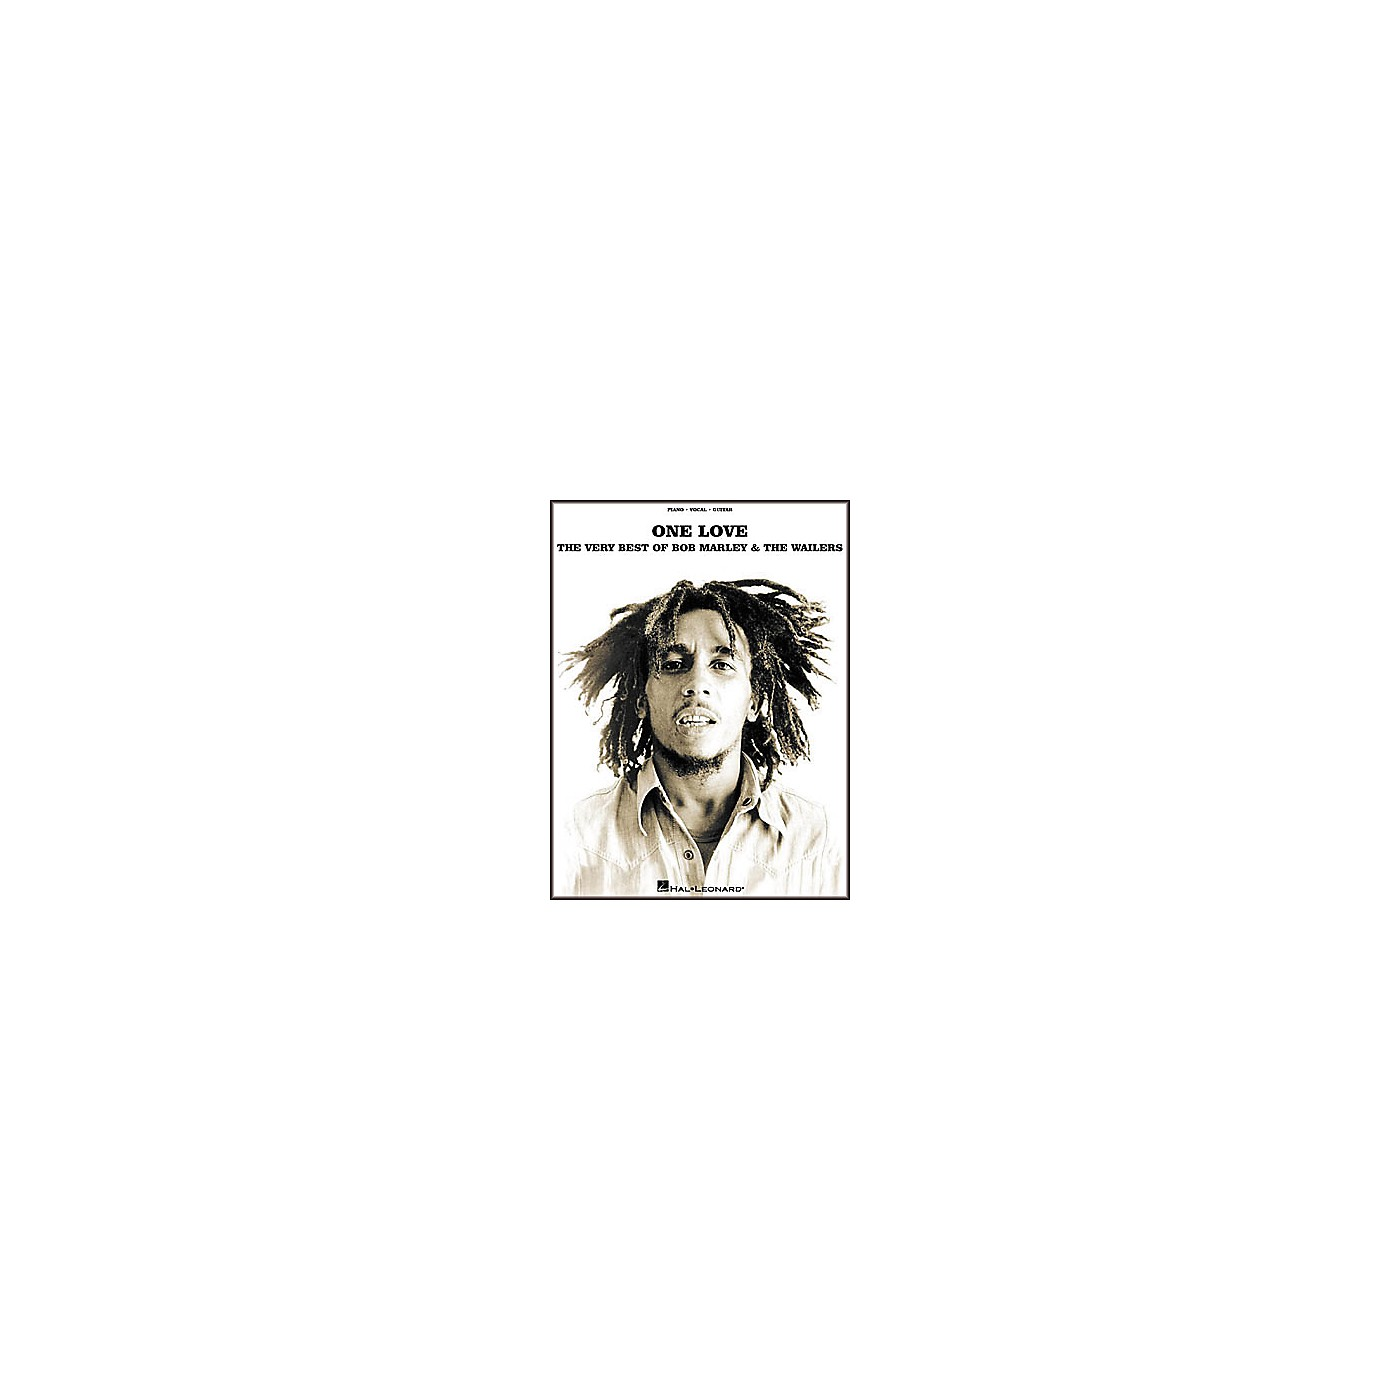 Hal Leonard One Love - The Very Best of Bob Marley and The Wailers Piano/Vocal/Guitar Artist Songbook thumbnail